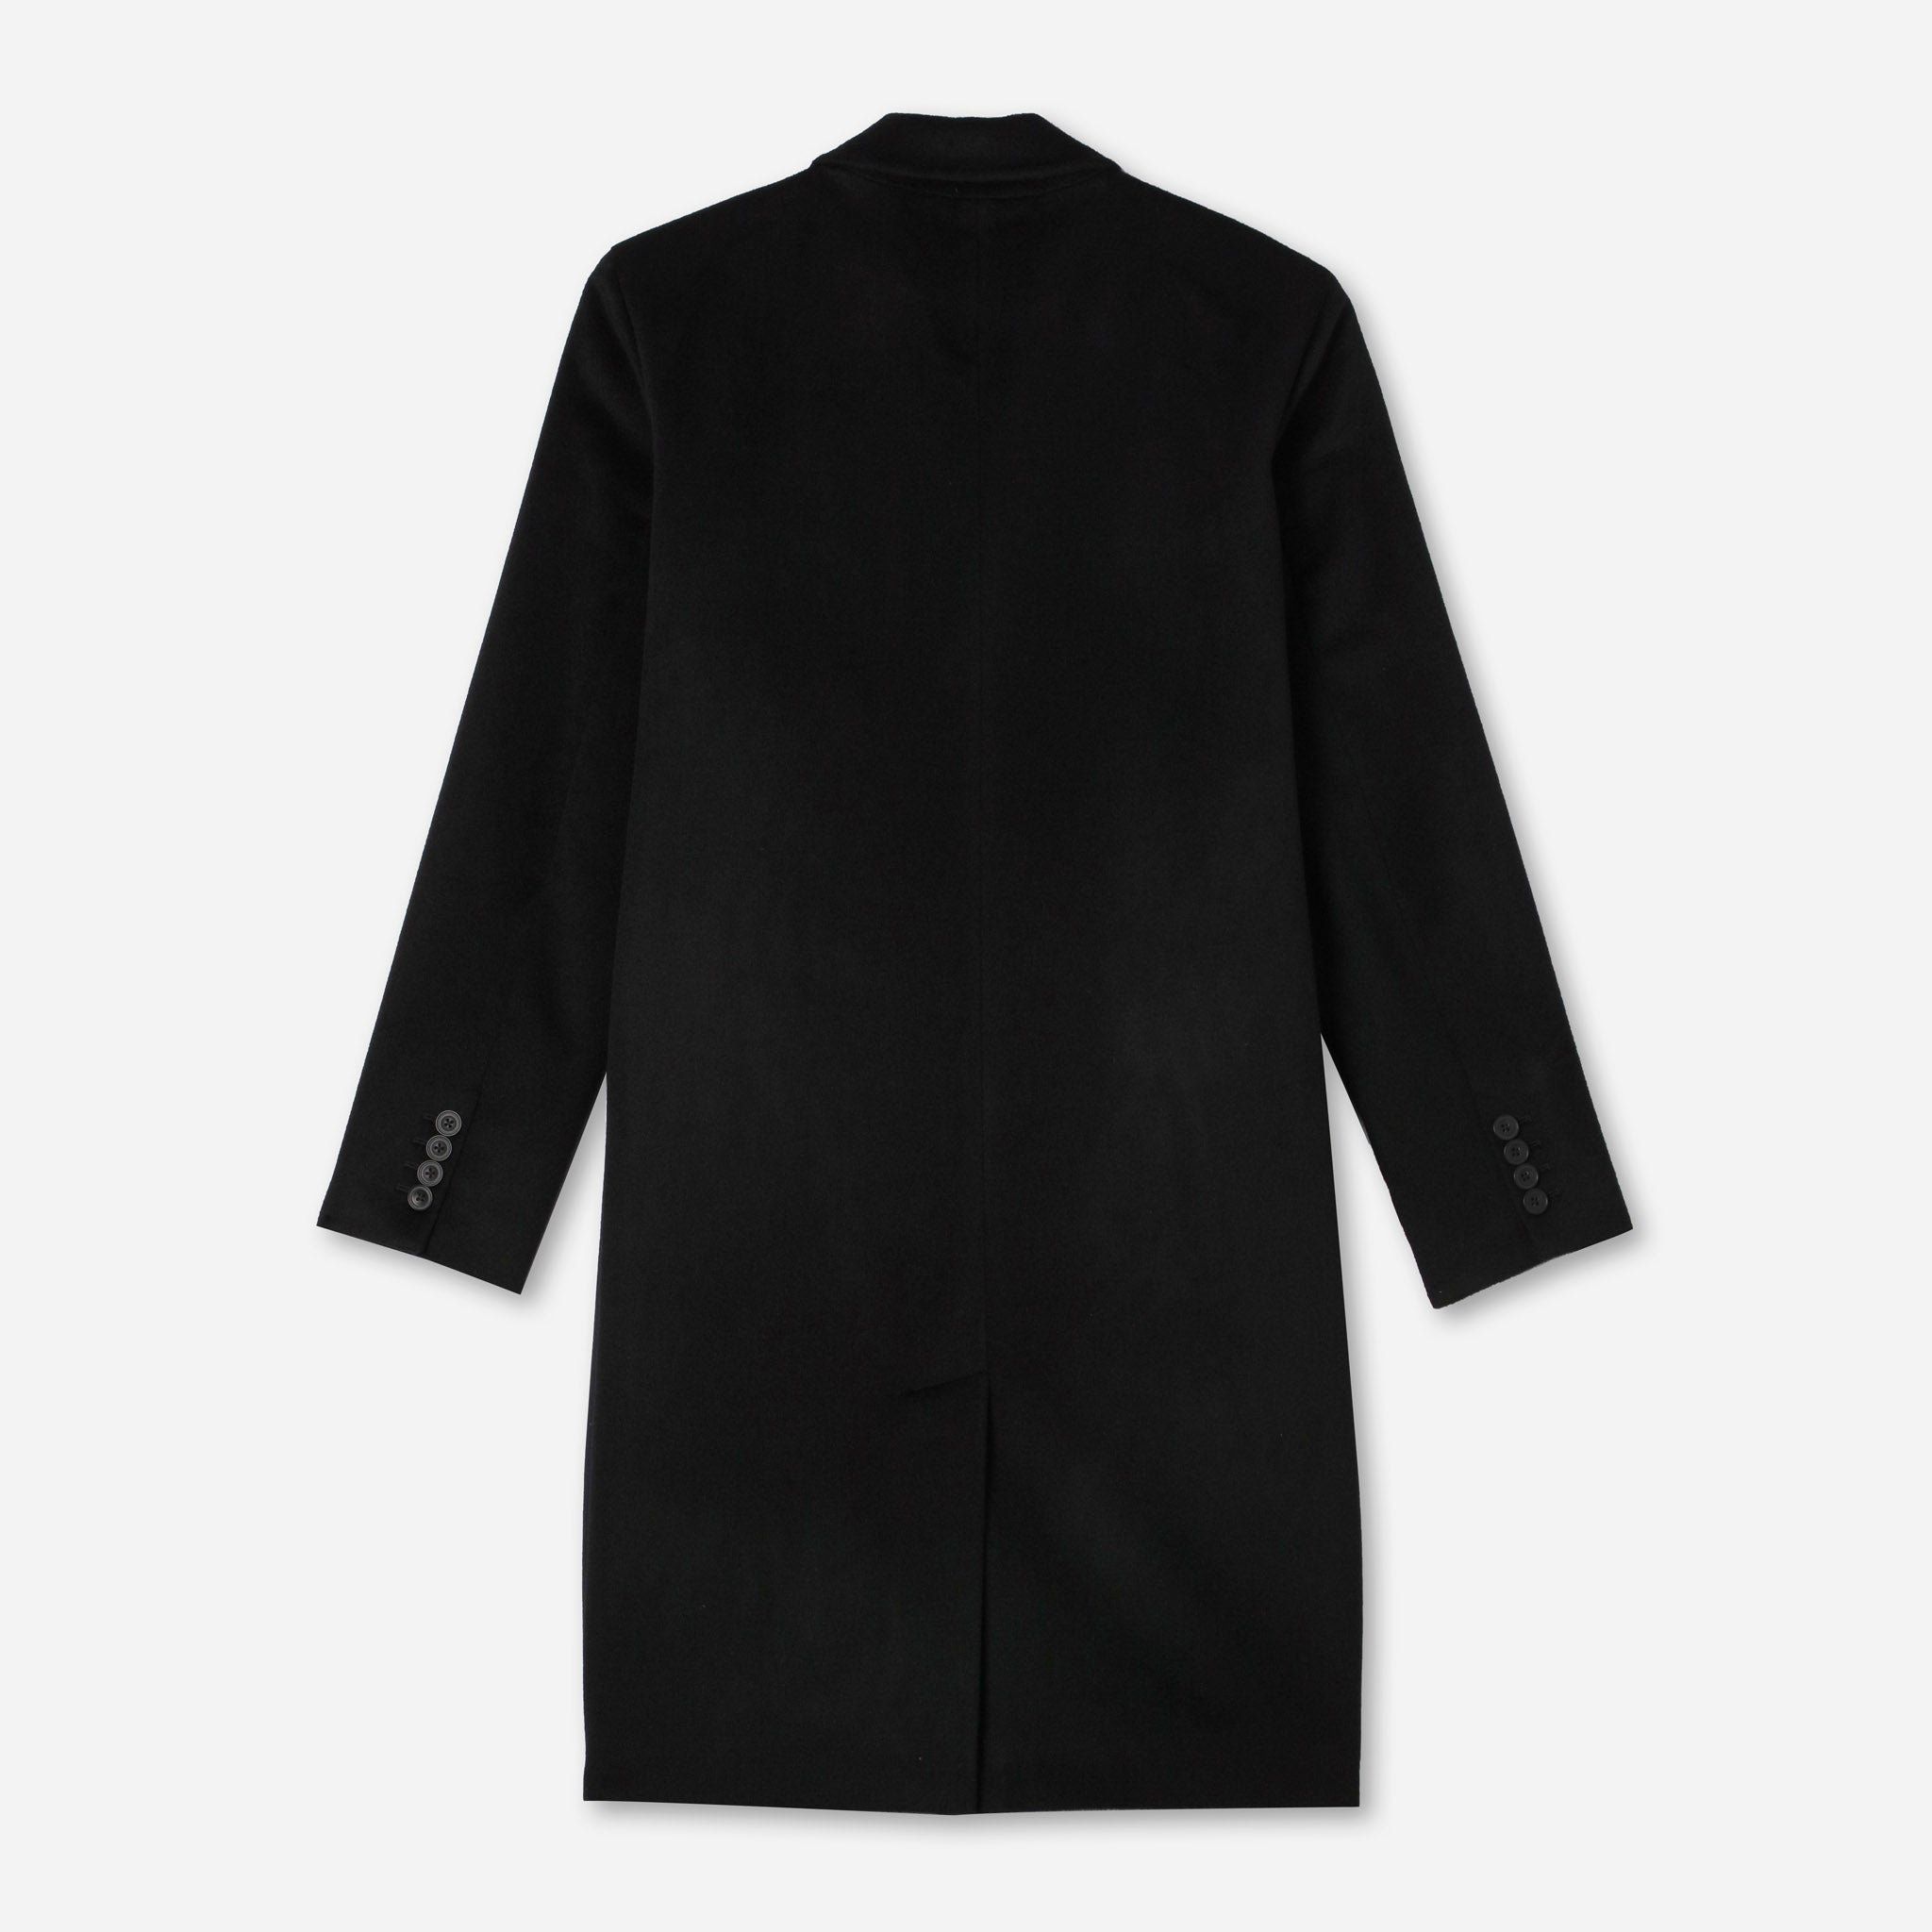 James Everyday Top Coat in Black